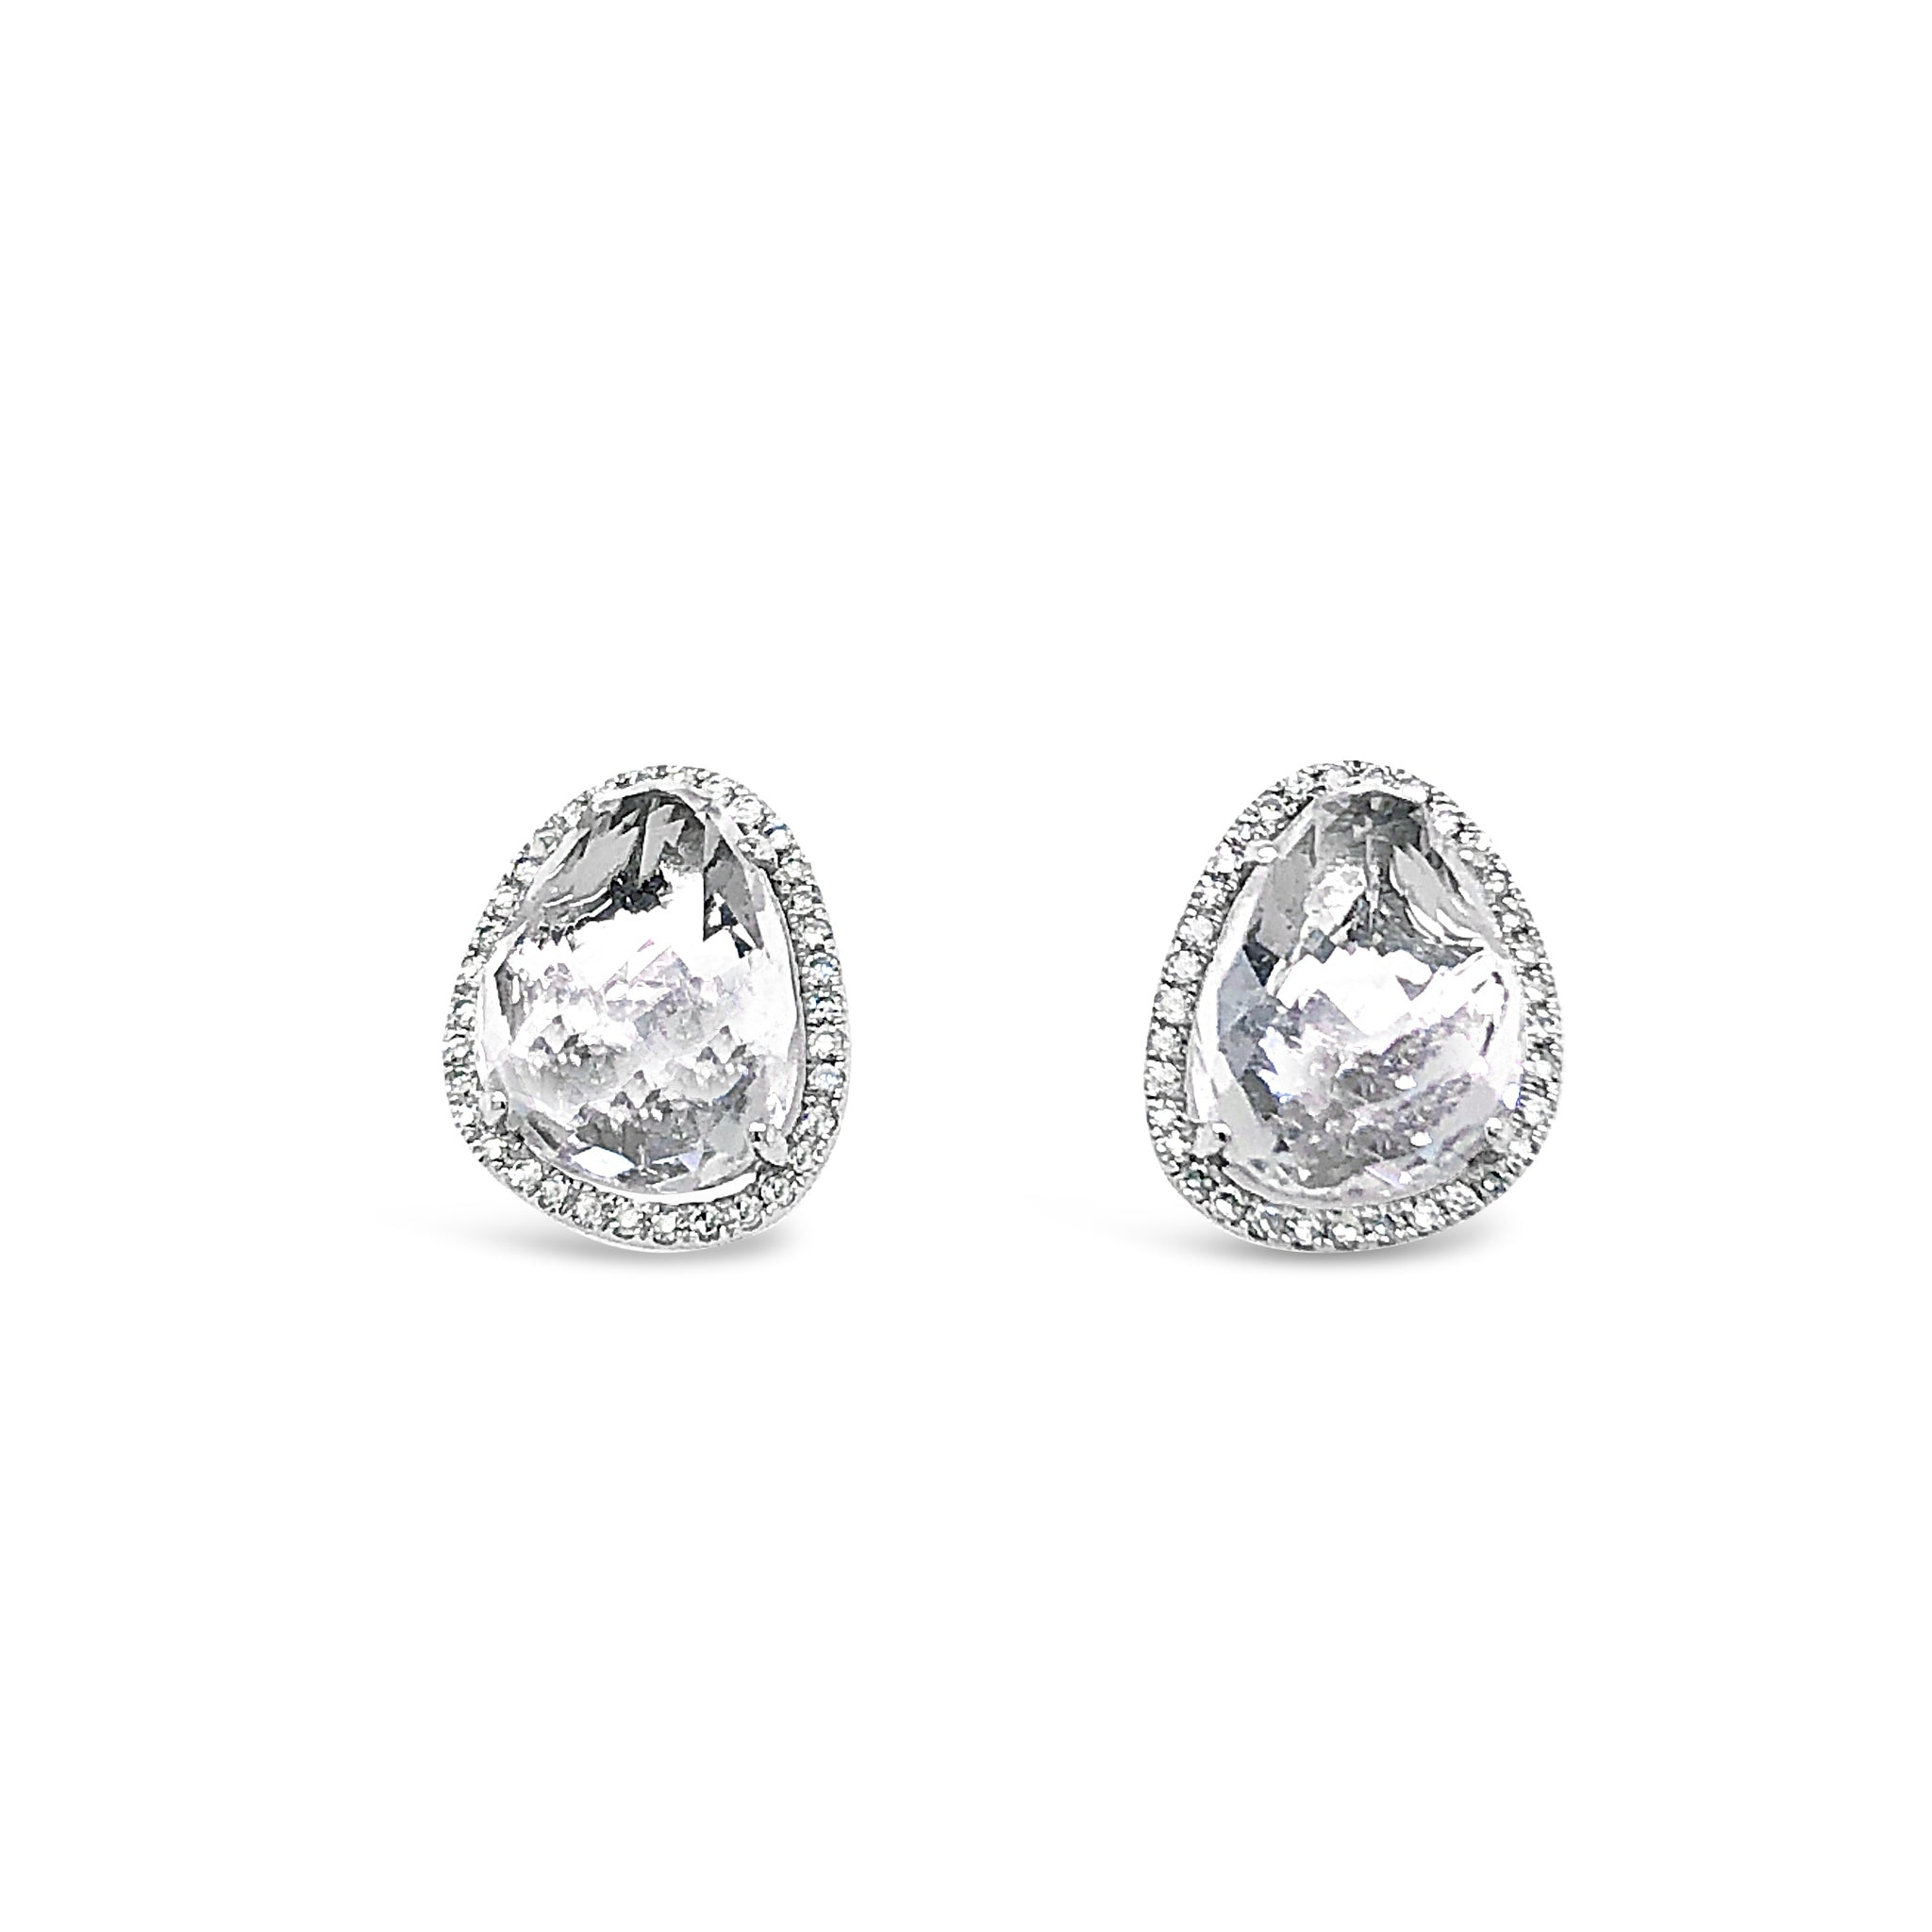 Large White Topaz Diamond Halo Stud Earring